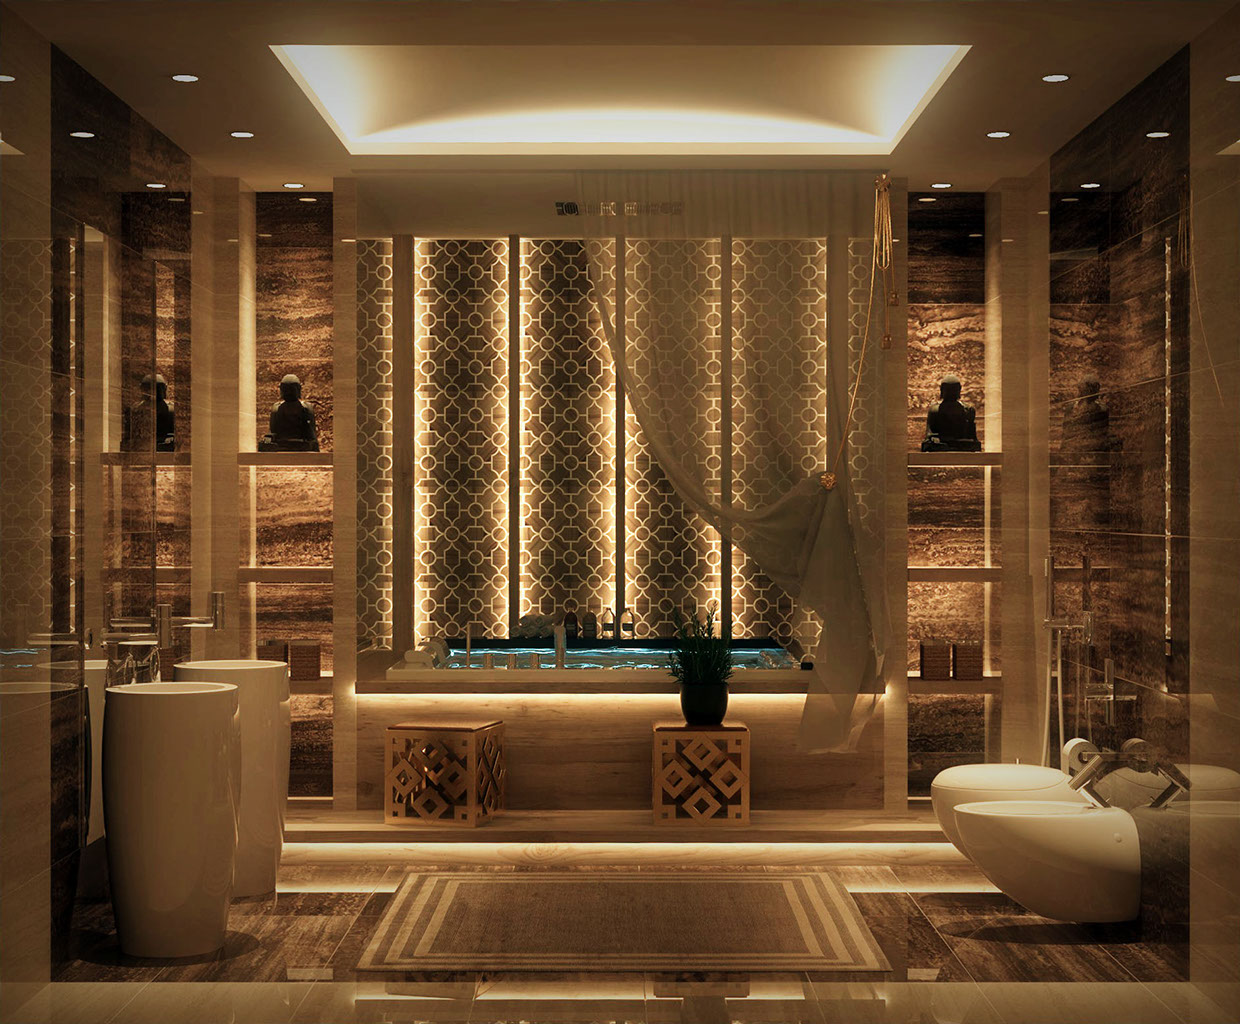 Fancy Bathrooms Luxurious Bathrooms With Stunning Design Details